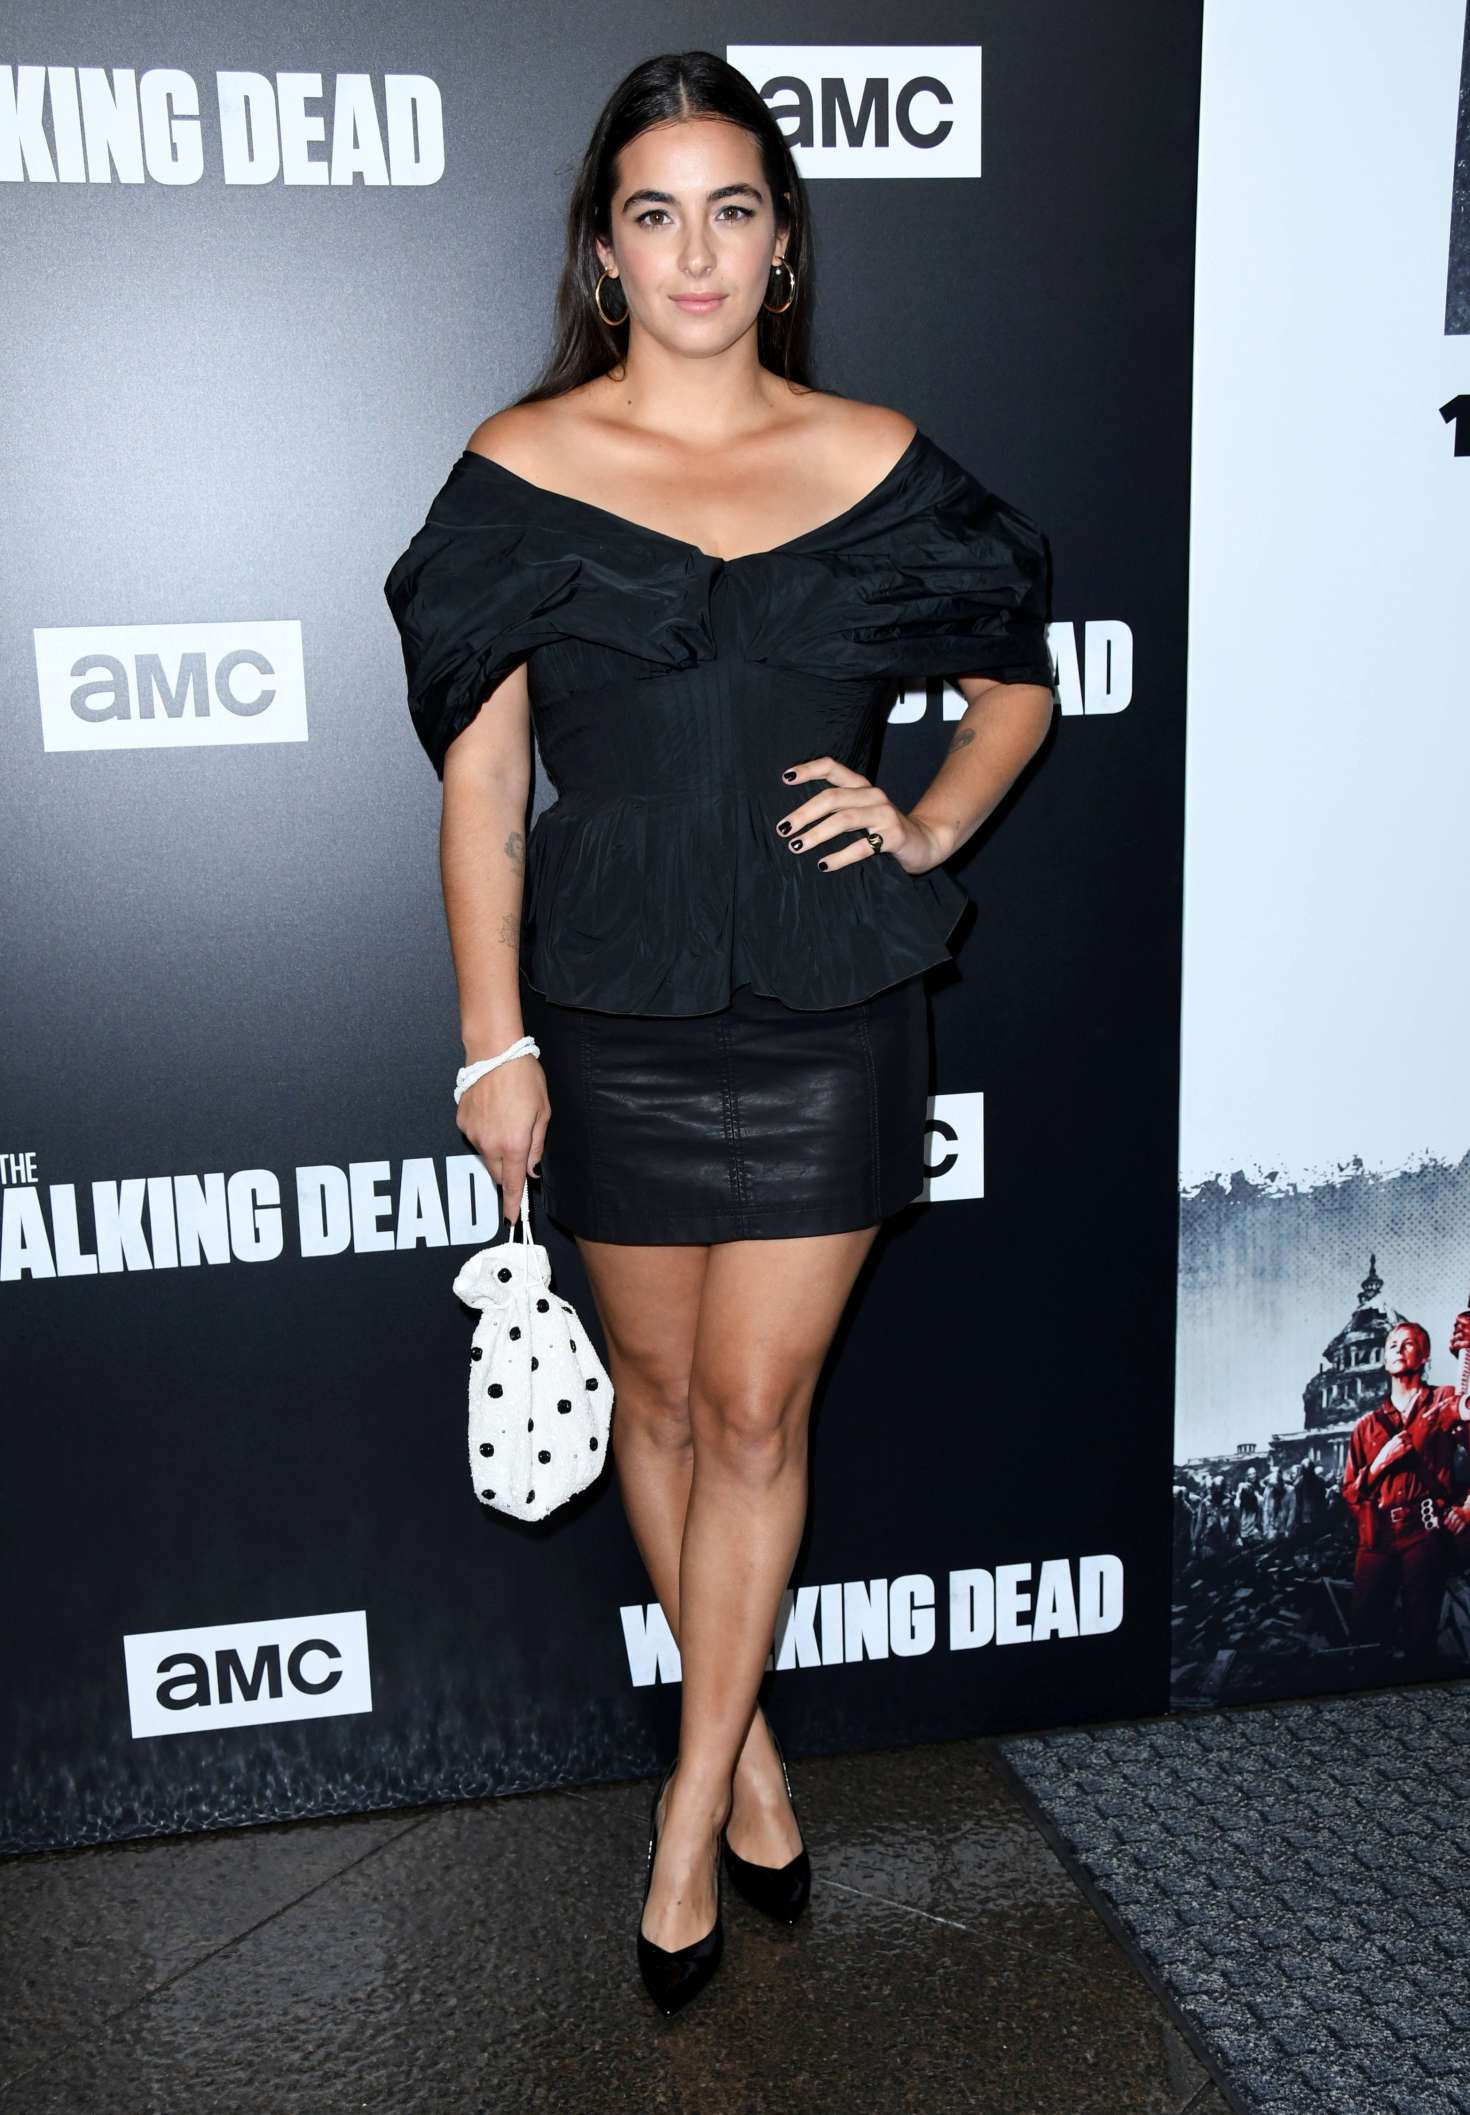 Alanna Masterson - 'The Walking Dead' TV Show Screening in LA